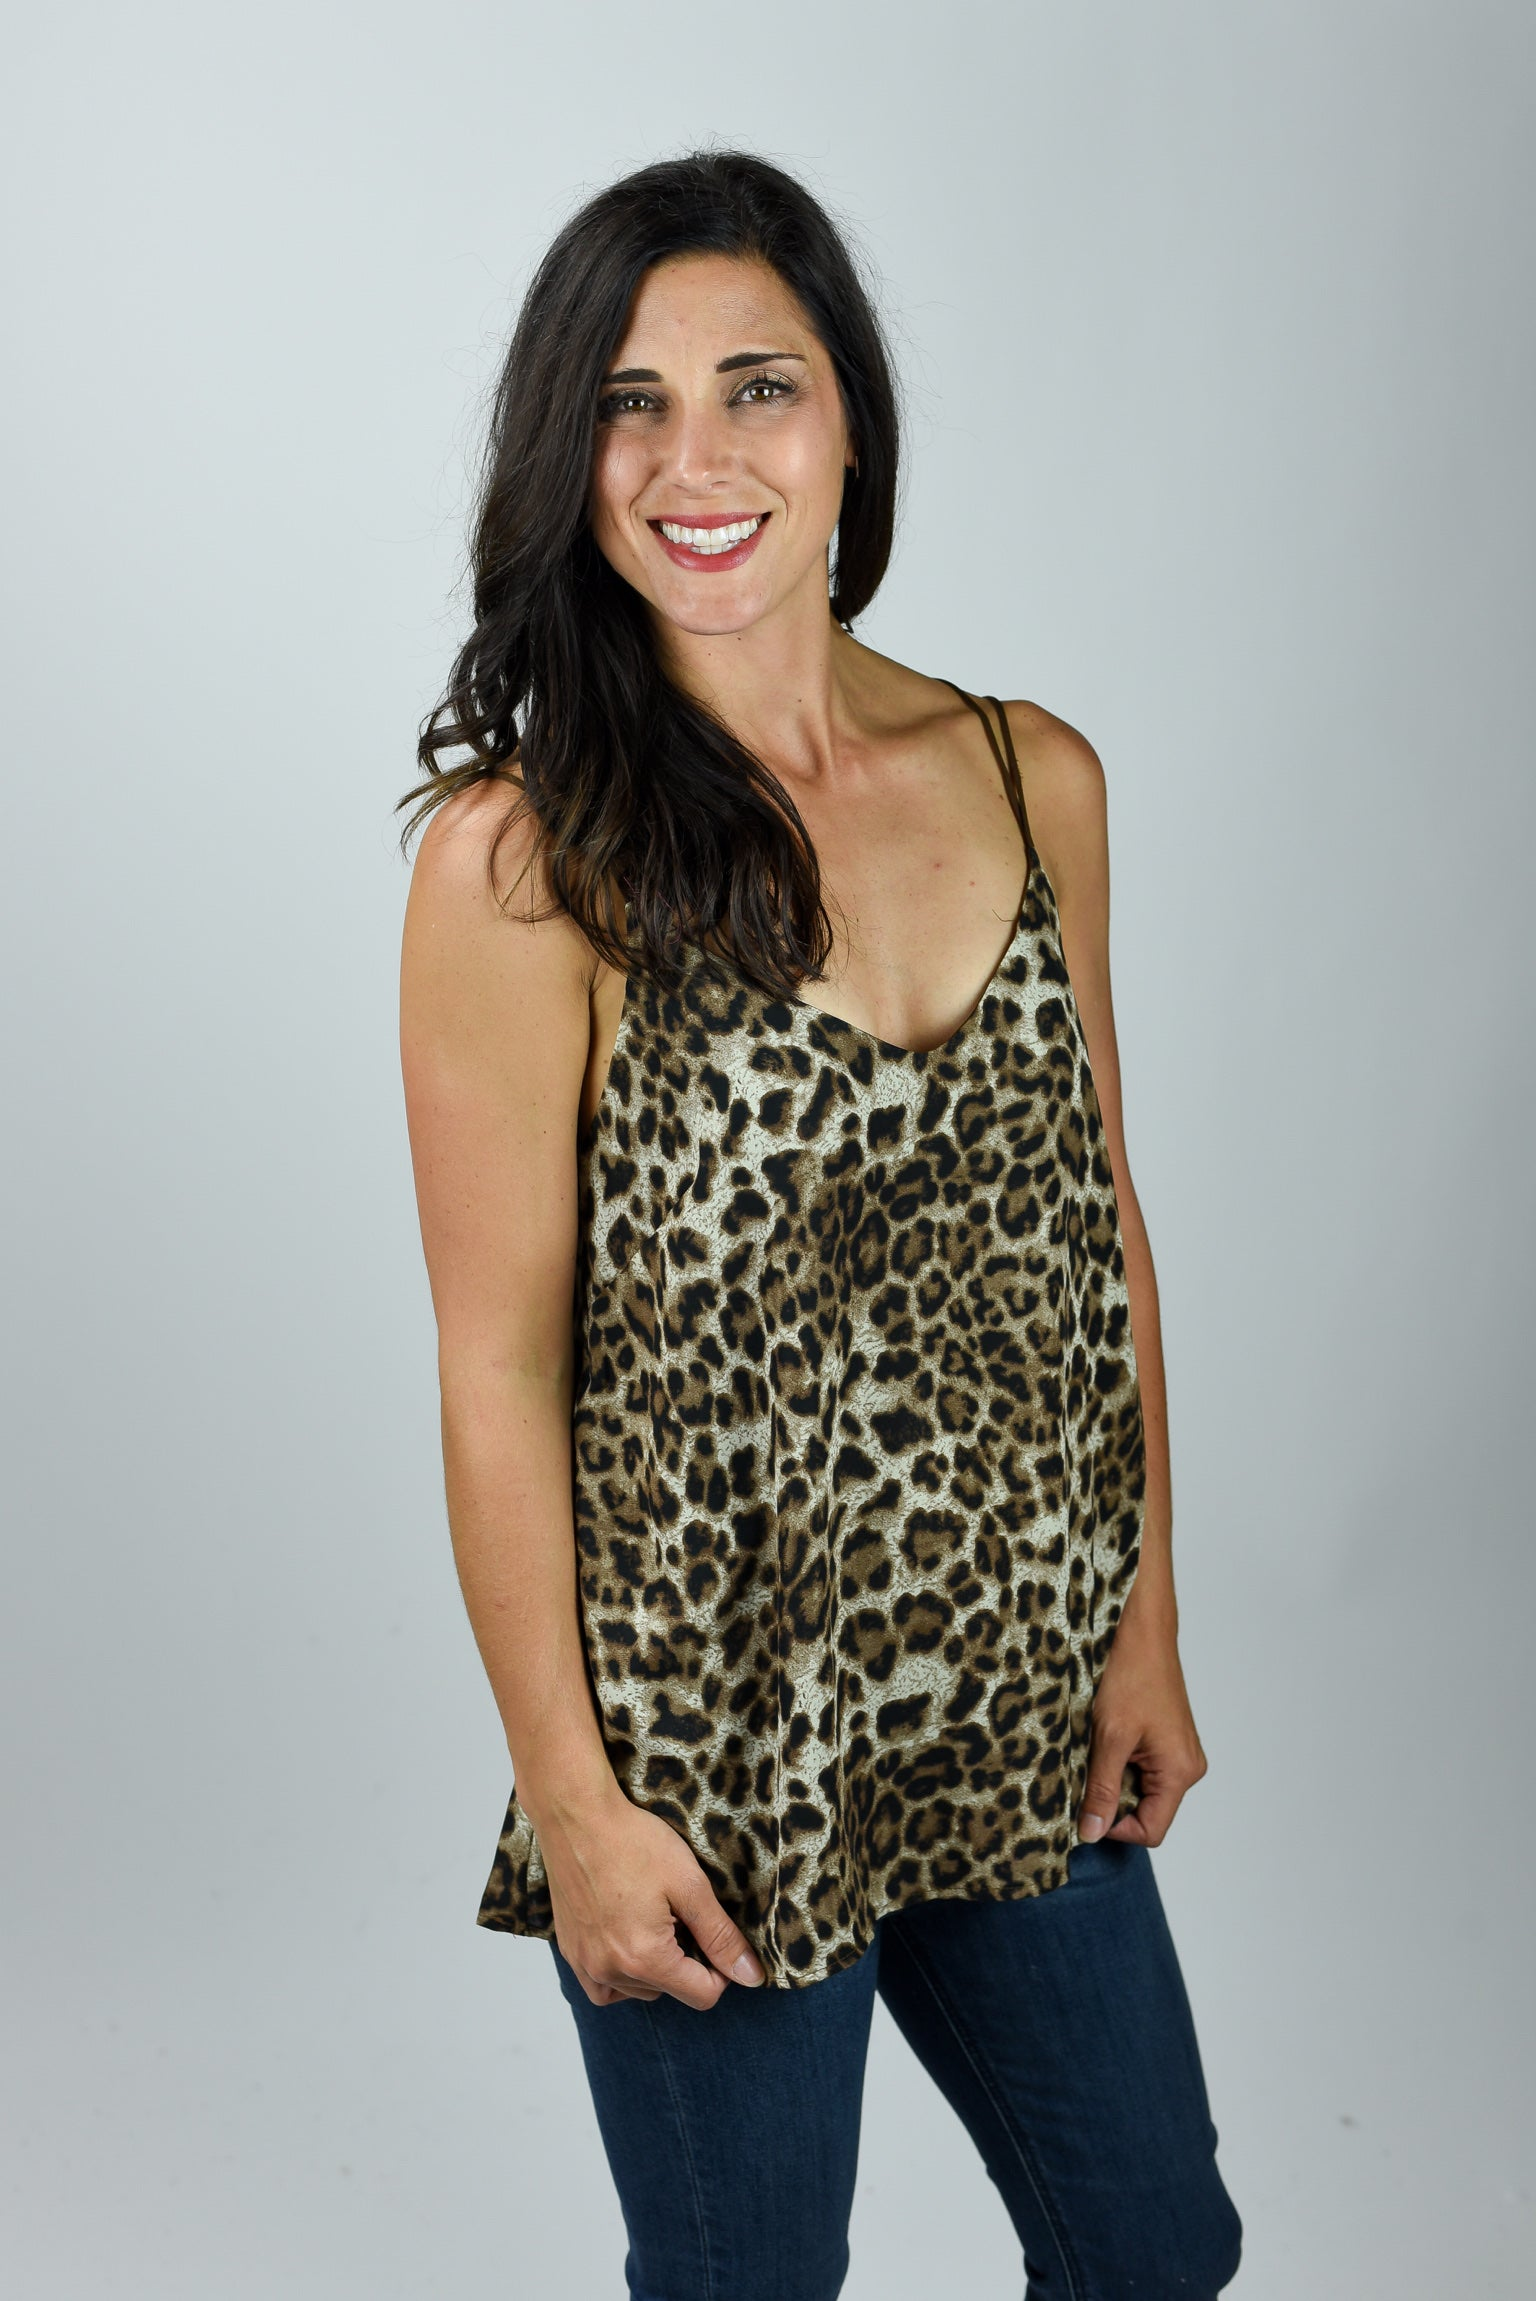 Bringing Out My Wild Side Leopard Print Tank